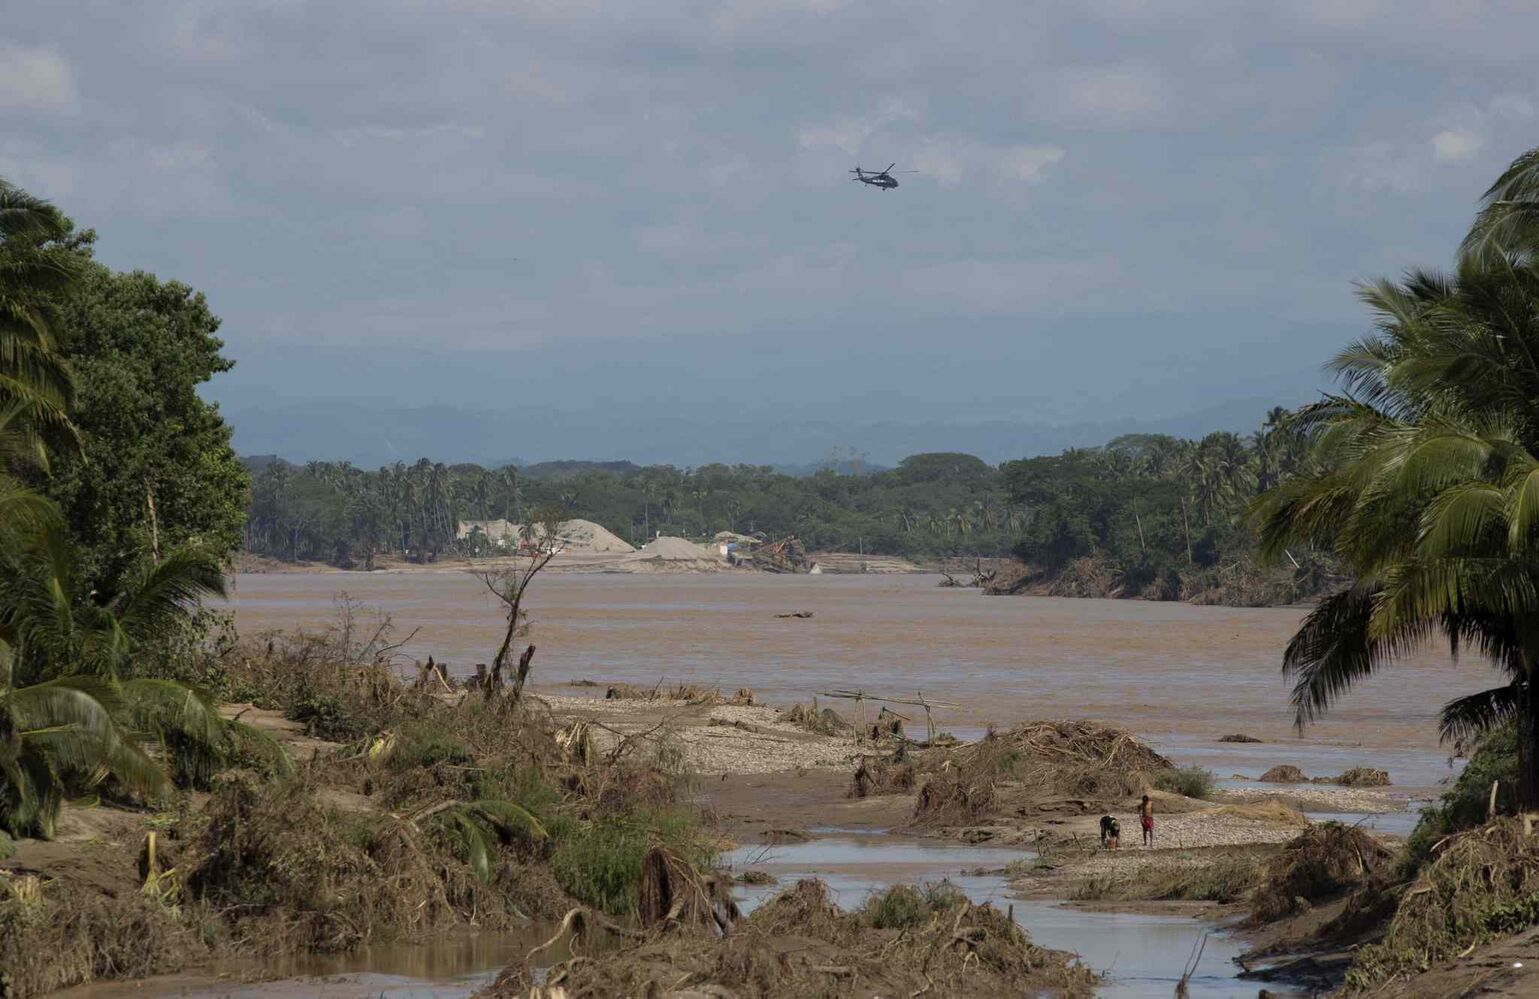 A federal police helicopter flies over a river, south of Acapulco, near the town of Lomas de Chapultepec, Guerrero state, Mexico, Wednesday, Sept. 18, 2013.  Emergency flights began arriving in Acapulco to evacuate at least 40,000 mainly Mexican tourists stranded in the resort city.  (Eduardo Verdugo / The Associated Press)